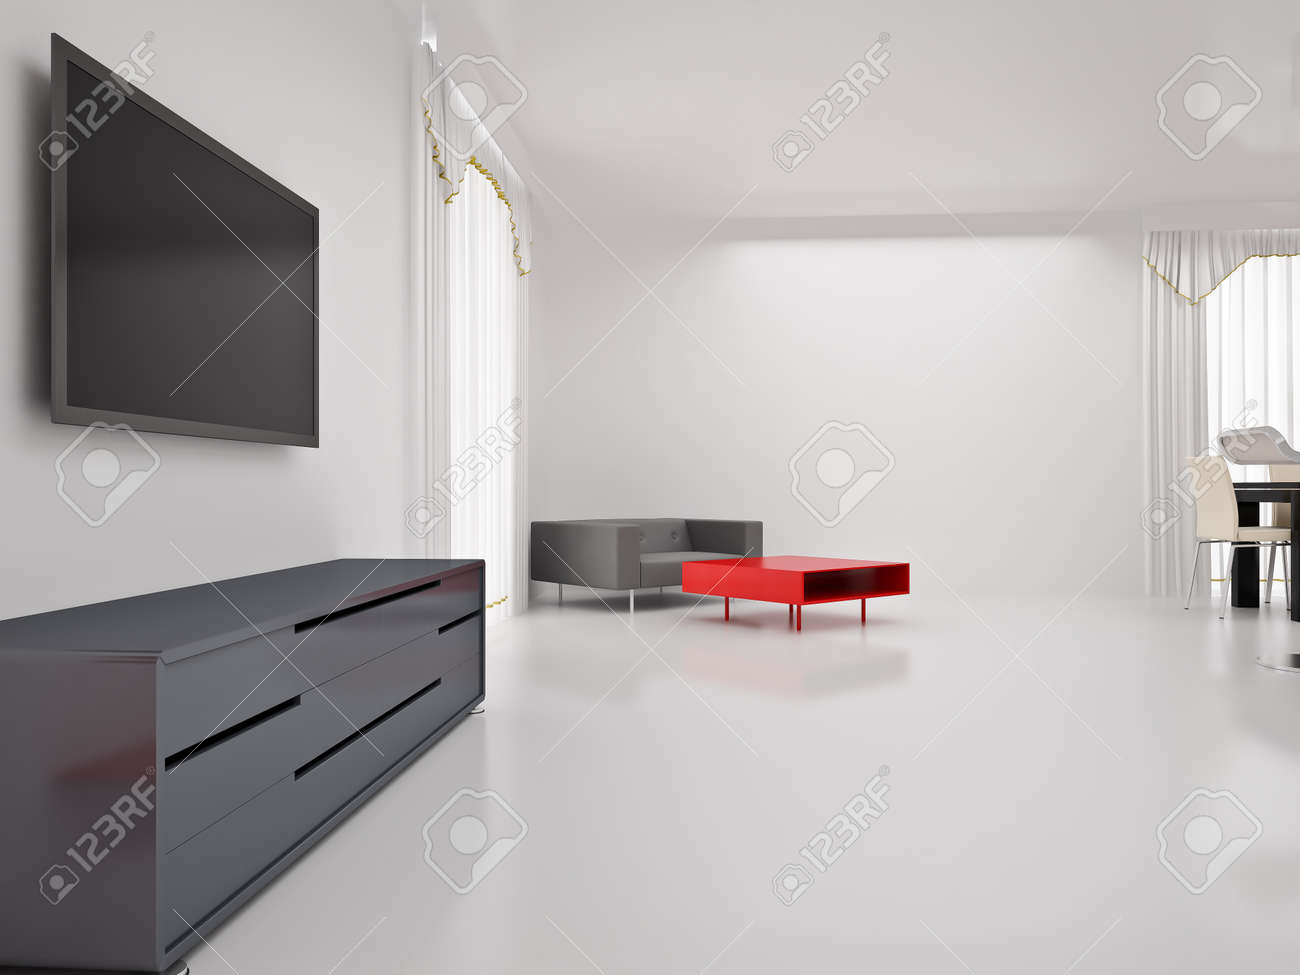 Modern TV In Room Interior Of The High Resolution Image 3d